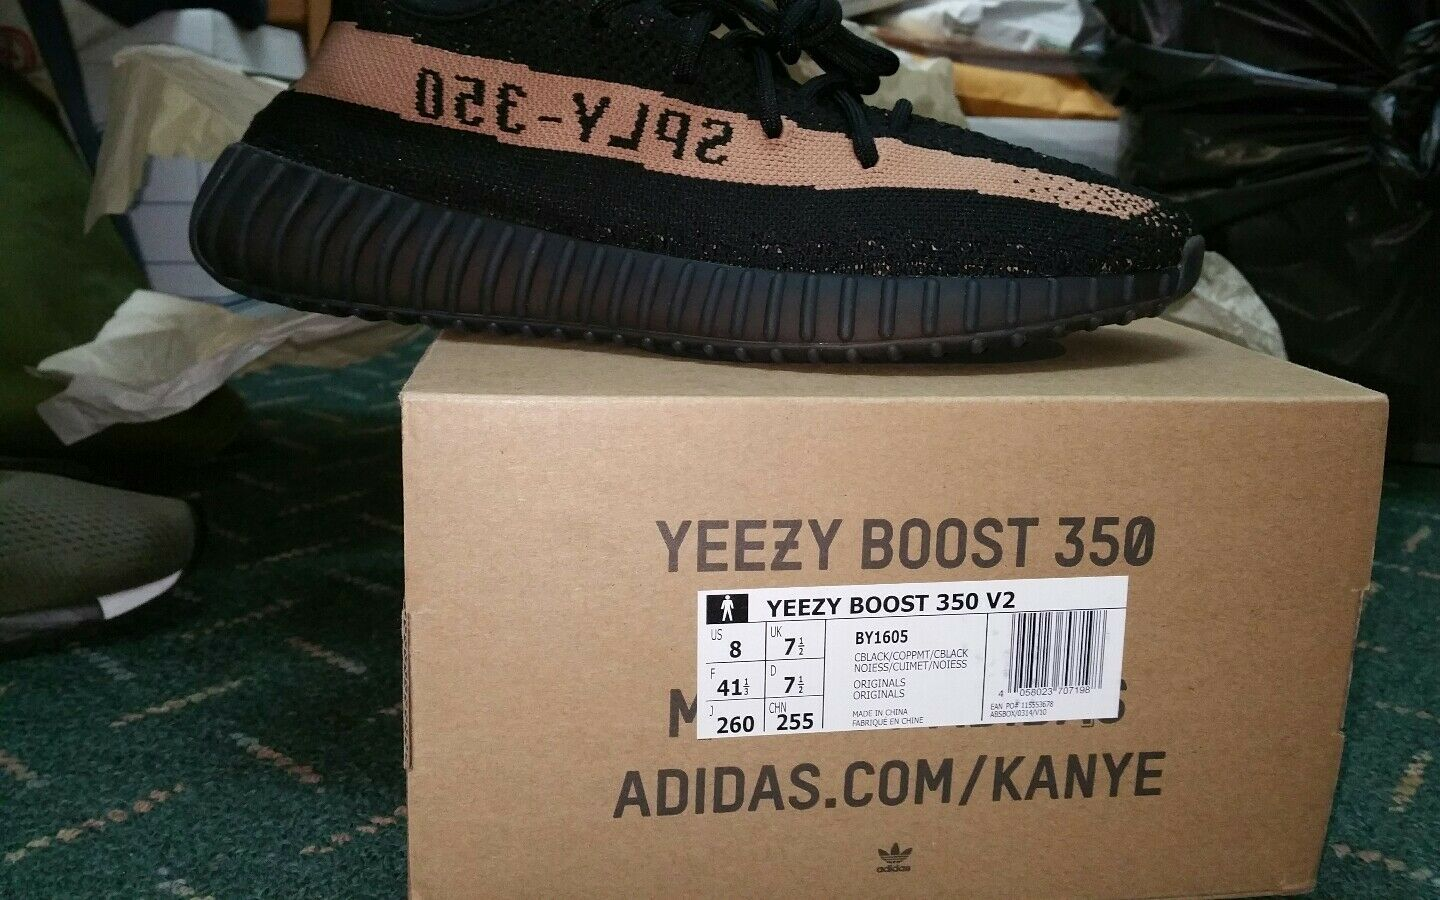 Adidas Adidas Adidas Yeezy Boost 350 V2 Black Copper 2016 BOOST low SPLY Kanye West  Sz 8 f7207e